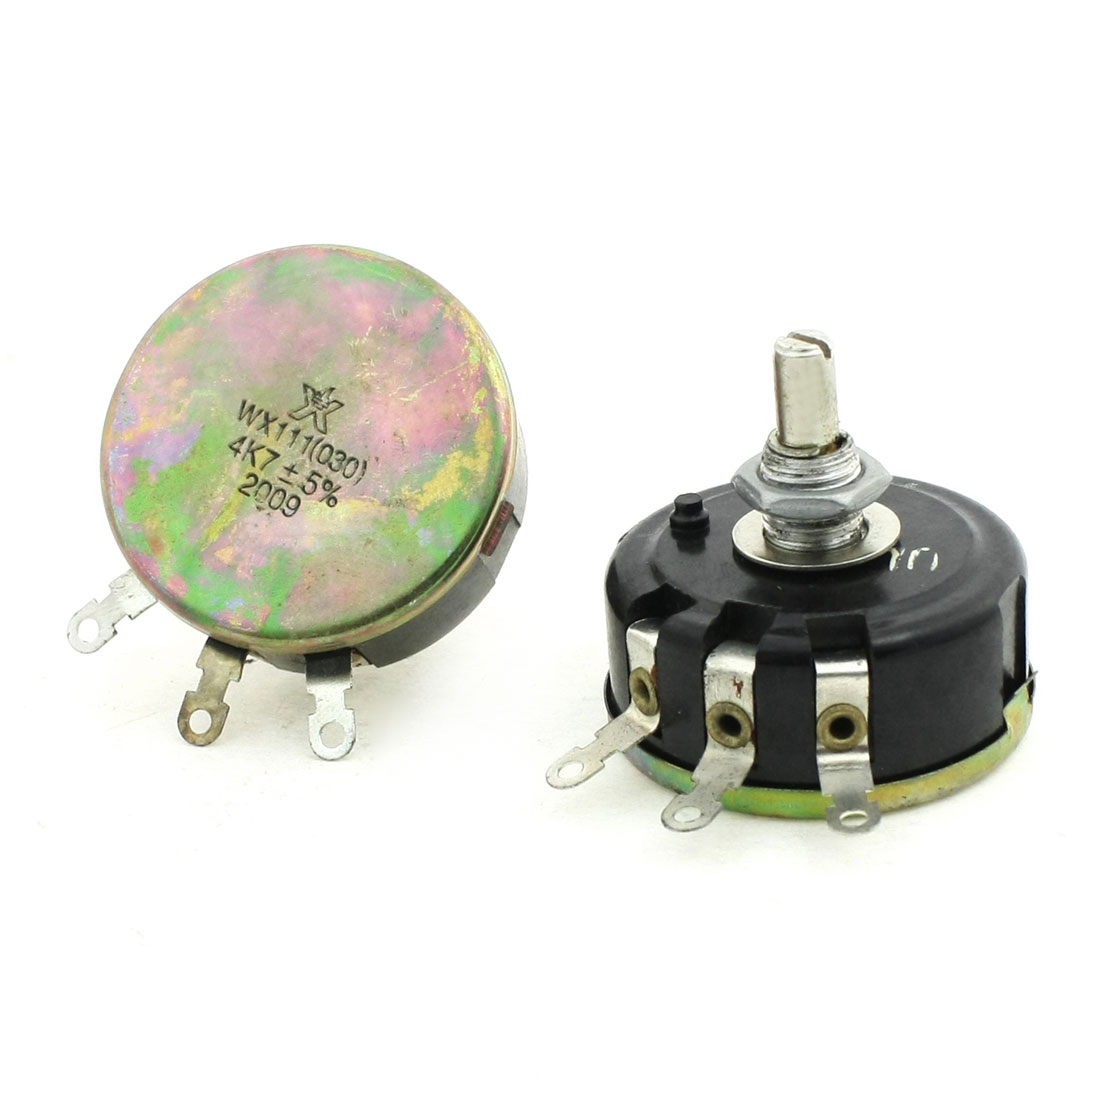 2-Pcs-6mm-Round-Shaft-Rotary-Linear-Taper-Carbon-Potentiometer-4-7K-ohm